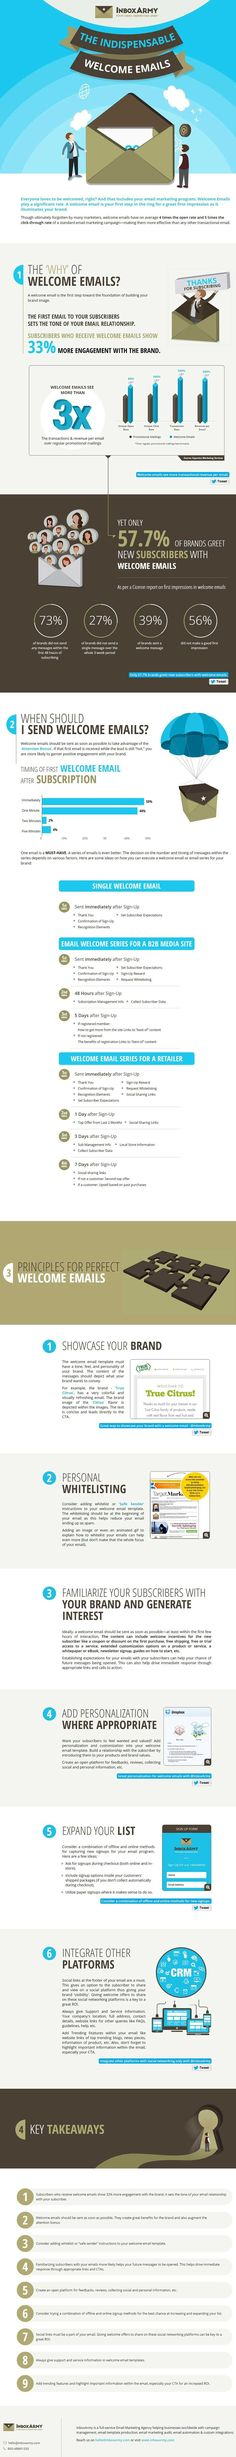 #EmailMarketing Basics: How to Create the Perfect Welcome Email #Infographic #Marketing